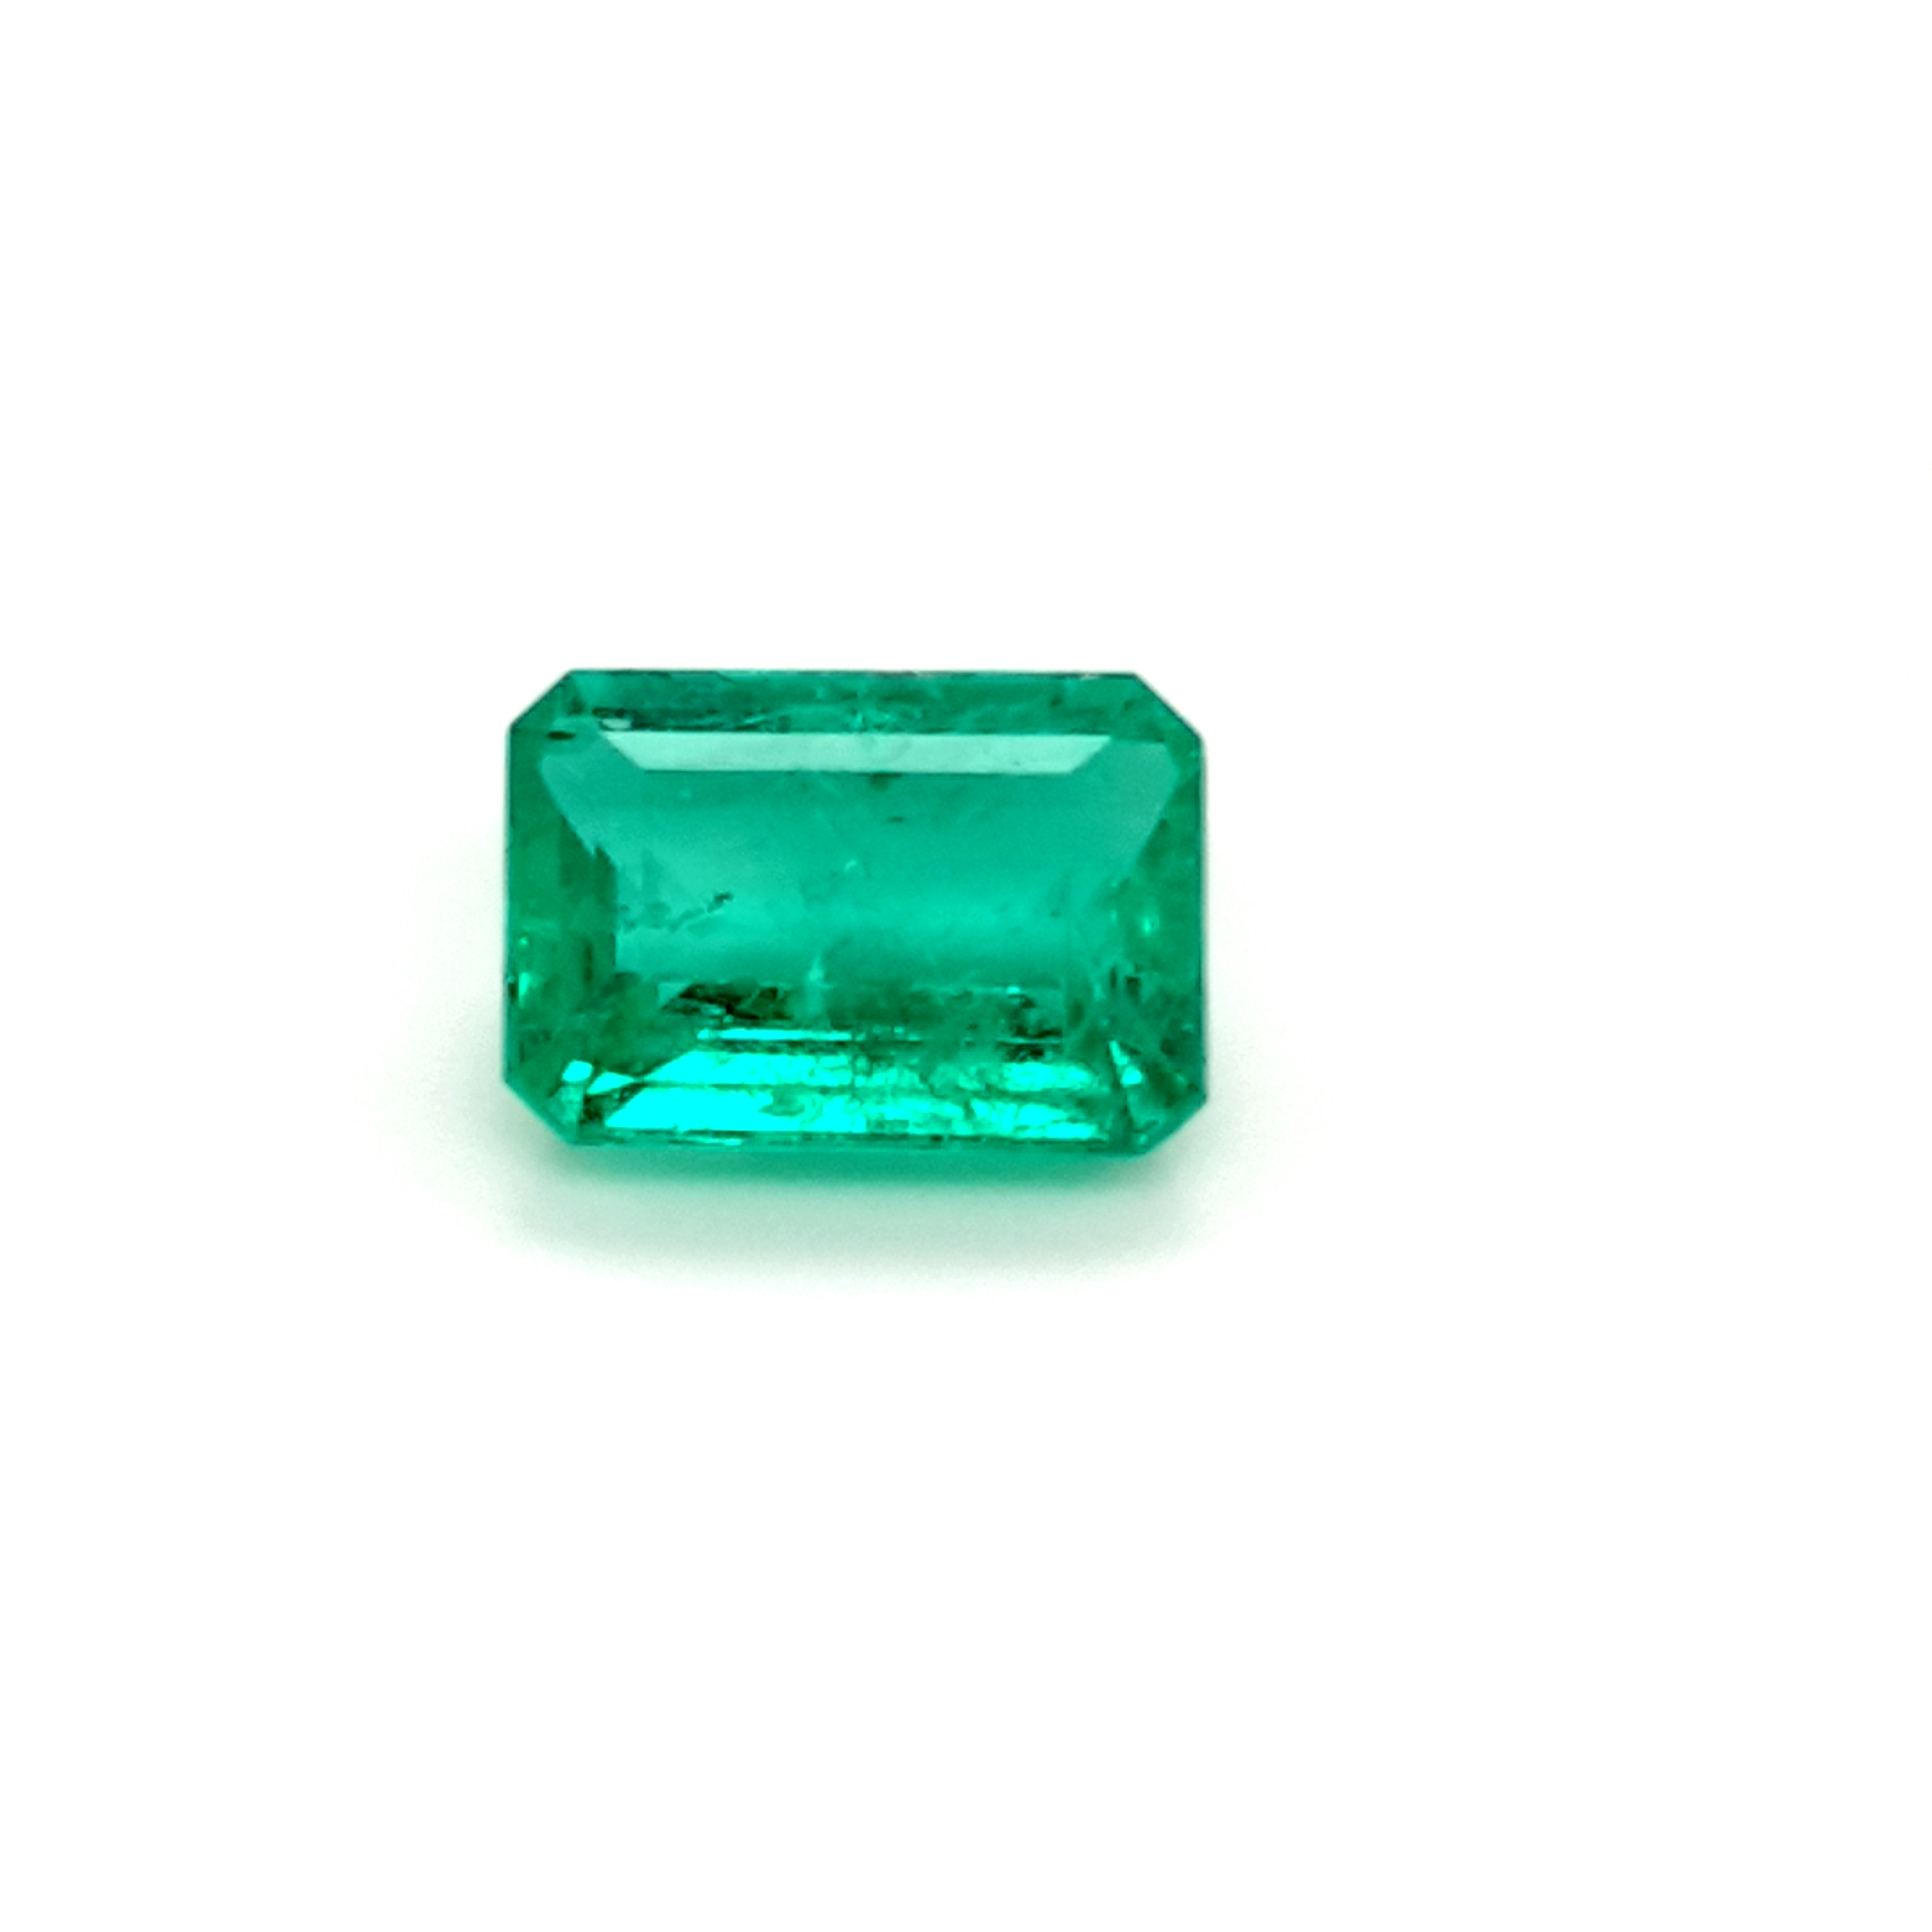 3,44ct. Emerald from Colombia cert. EMH18D7 ClaudiaHamann__2021-03-26-00-21-21